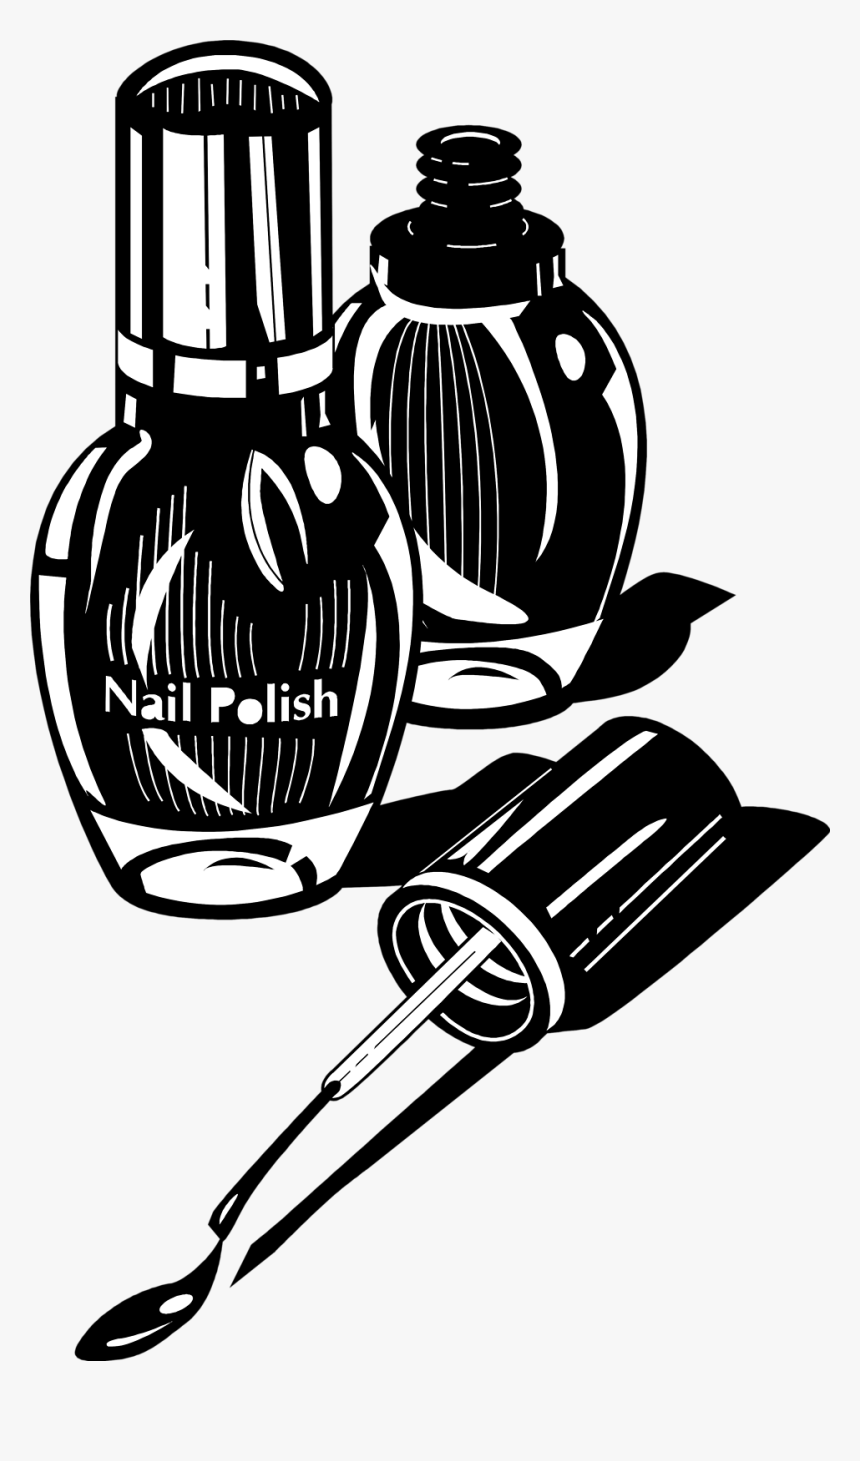 nail polish clipart black and white nail art logo png transparent png transparent png image pngitem nail polish clipart black and white